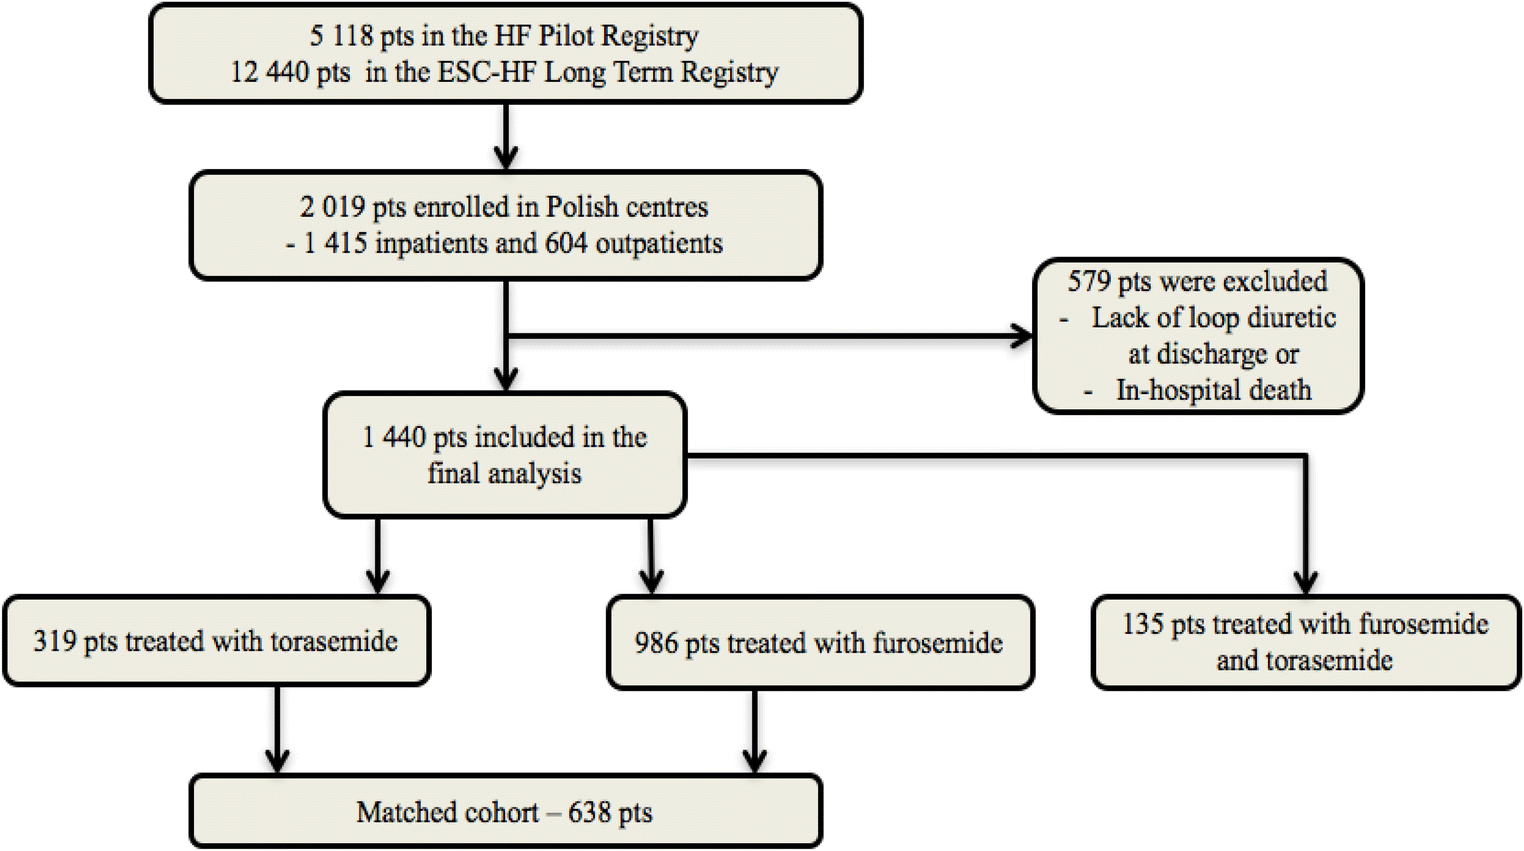 Comparative Analysis of Long-Term Outcomes of Torasemide and